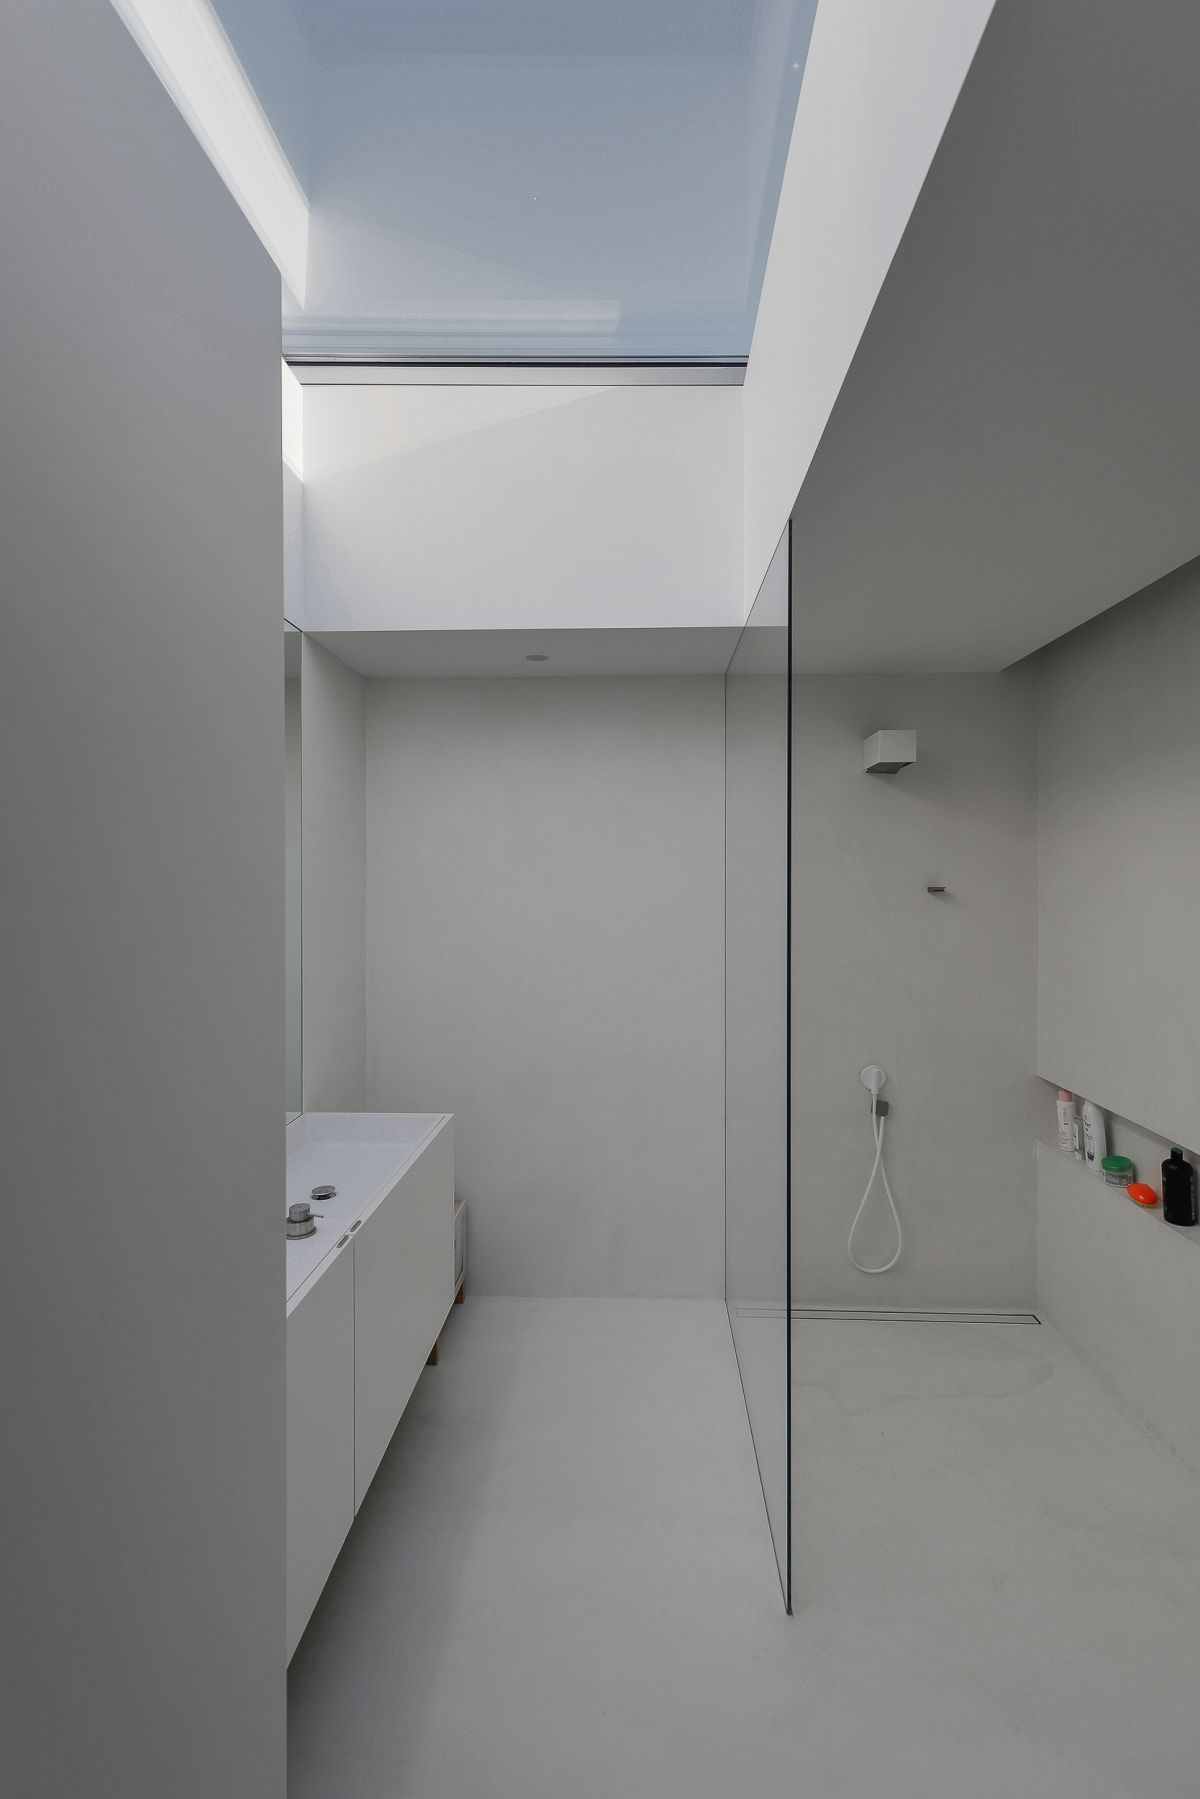 An all-white room and plenty of glass make for a modern bathroom.